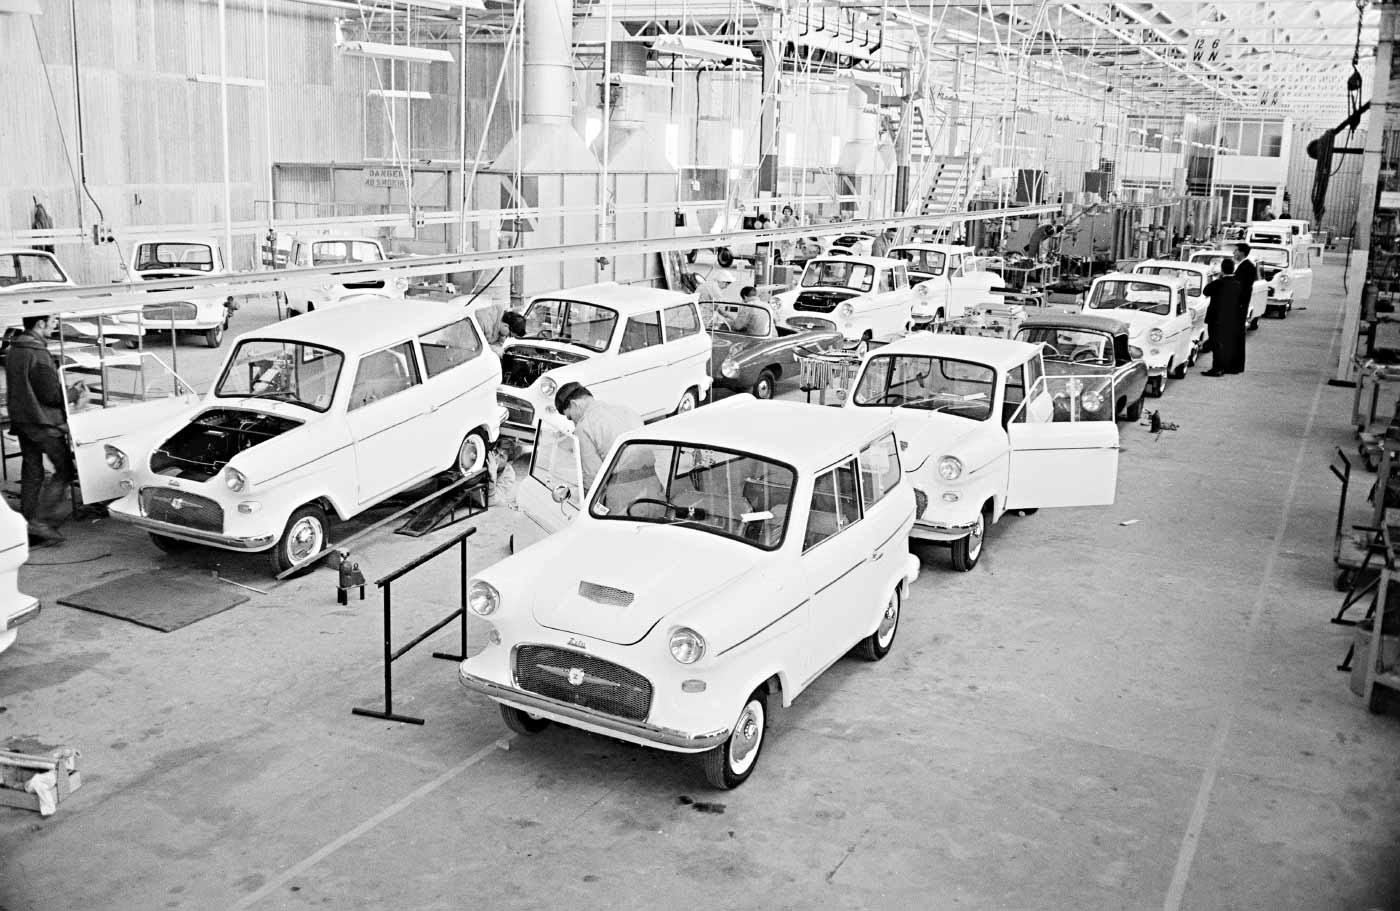 A black and white image of a row of cars on a mass production line.